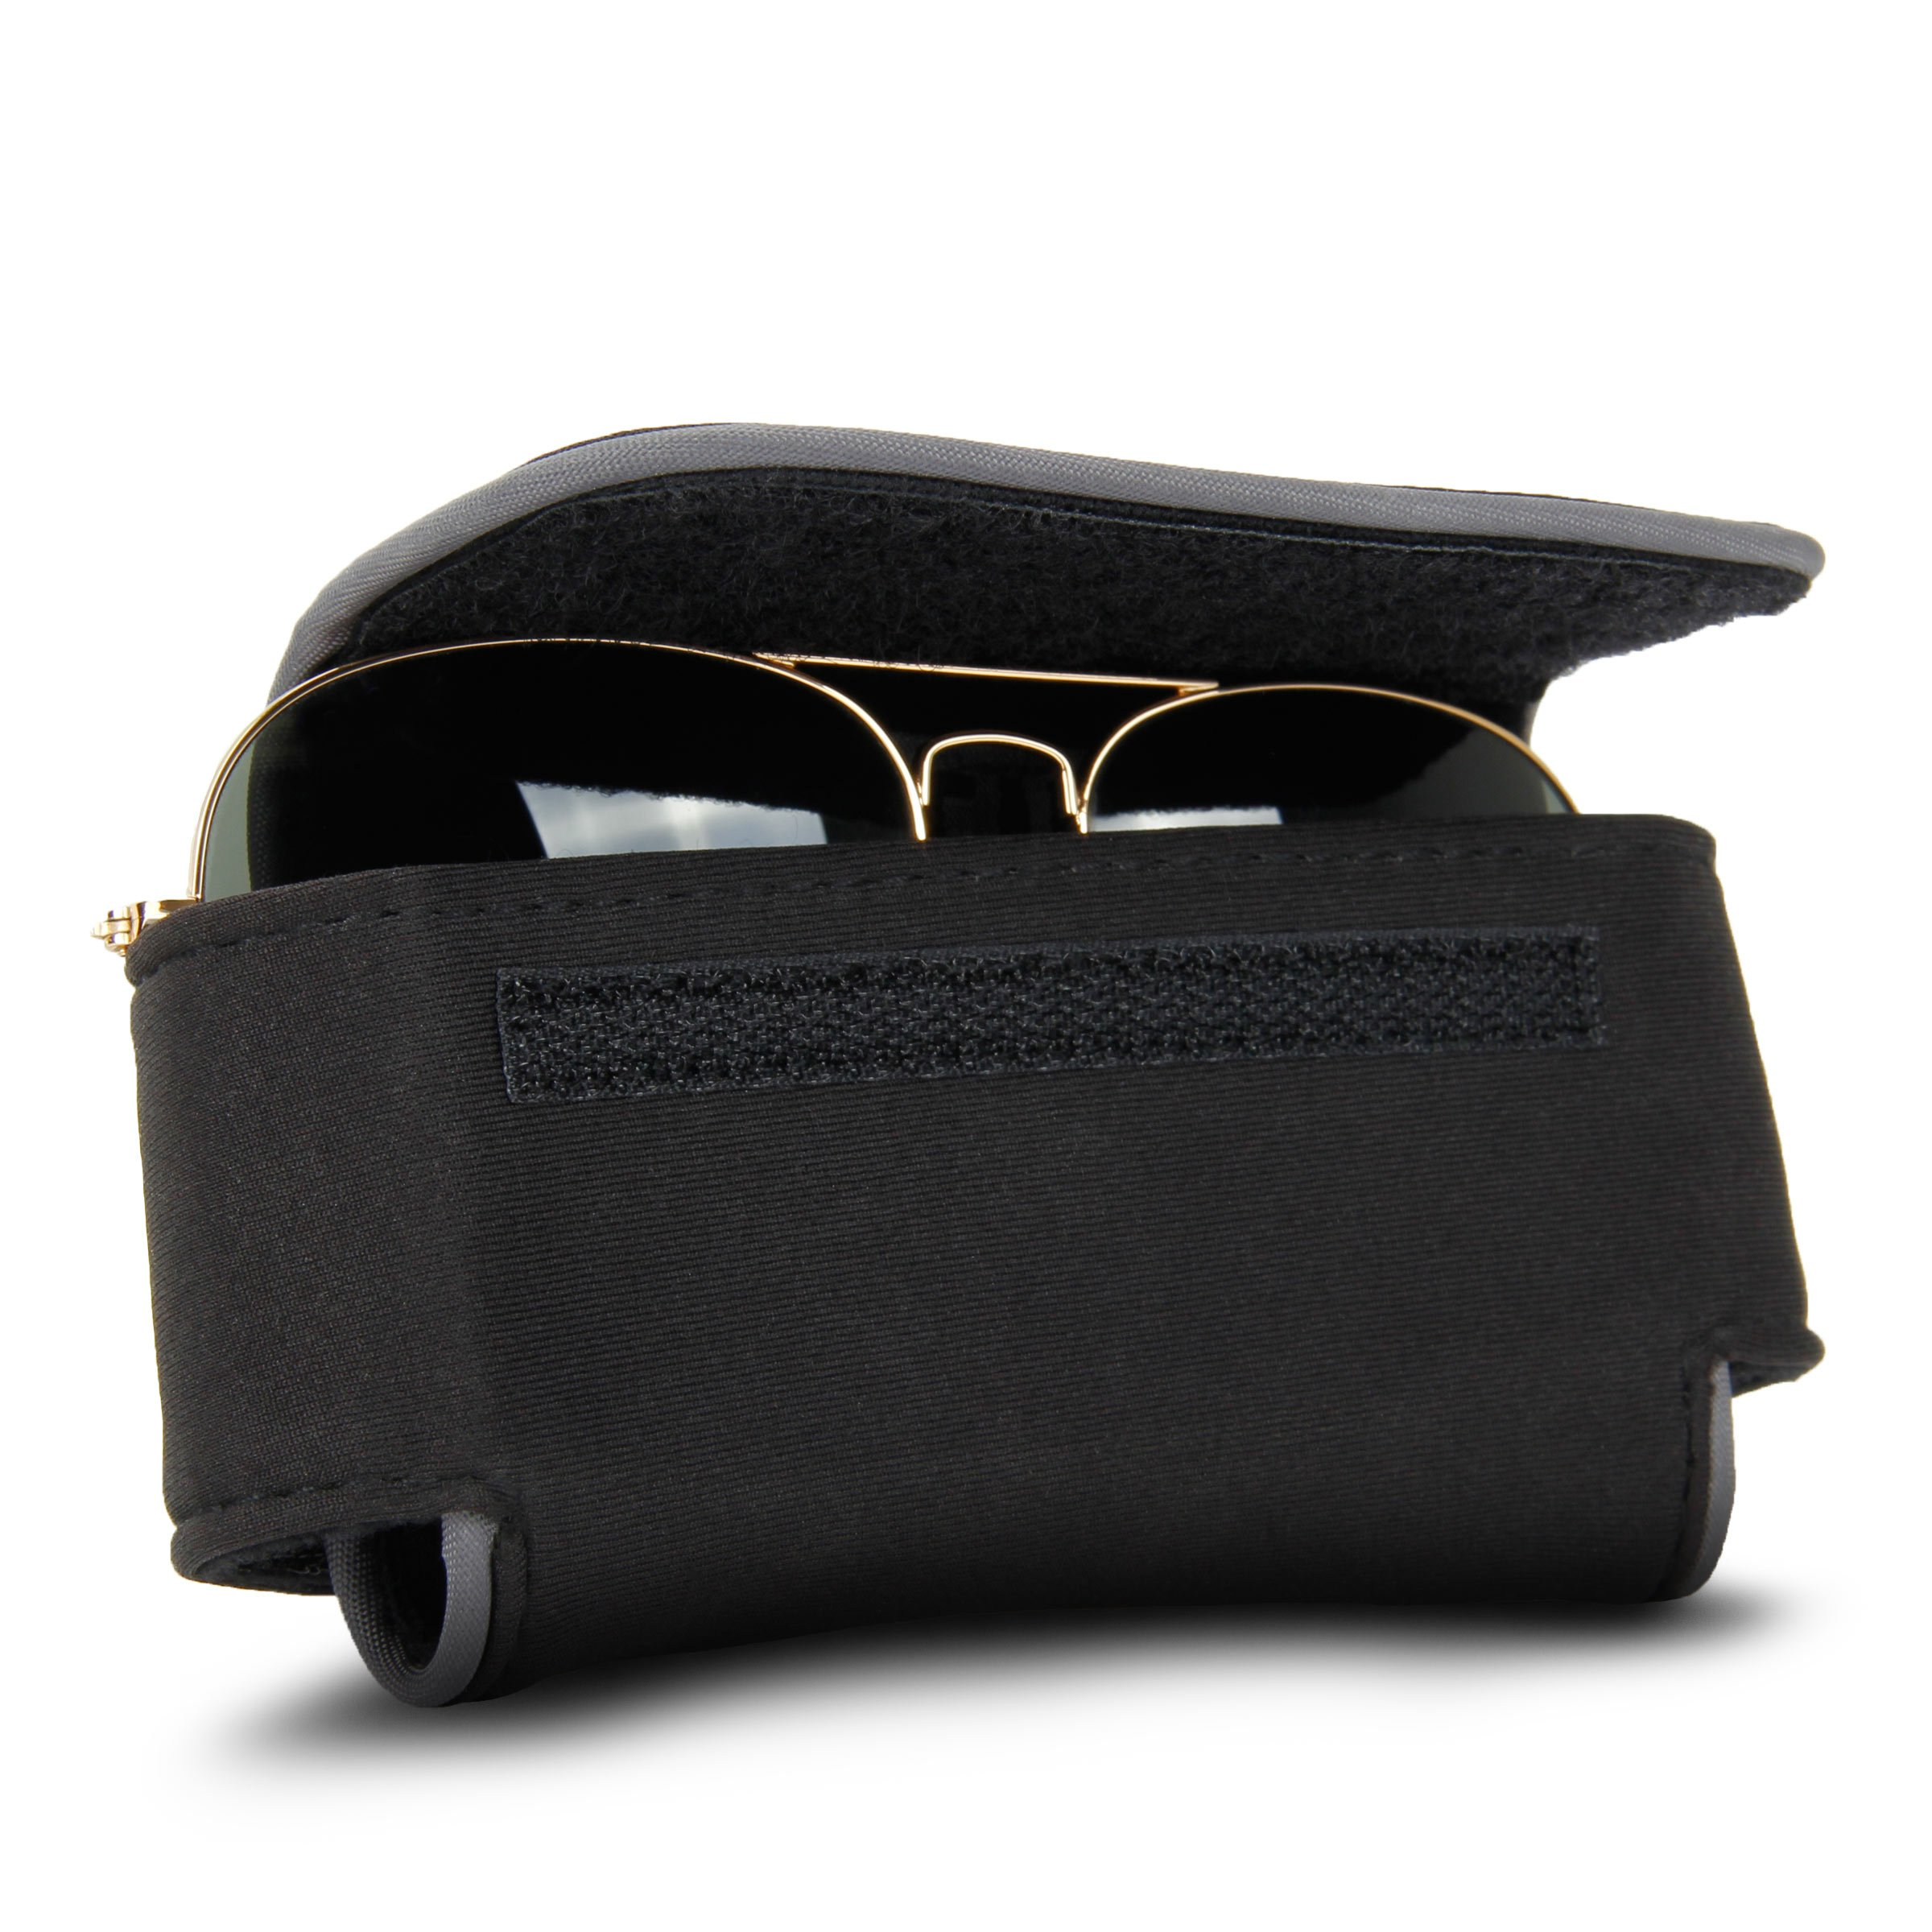 USA Gear Eye Glasses / Sunglasses Holder Soft Adjustable Case with Belt Clip by USA Gear